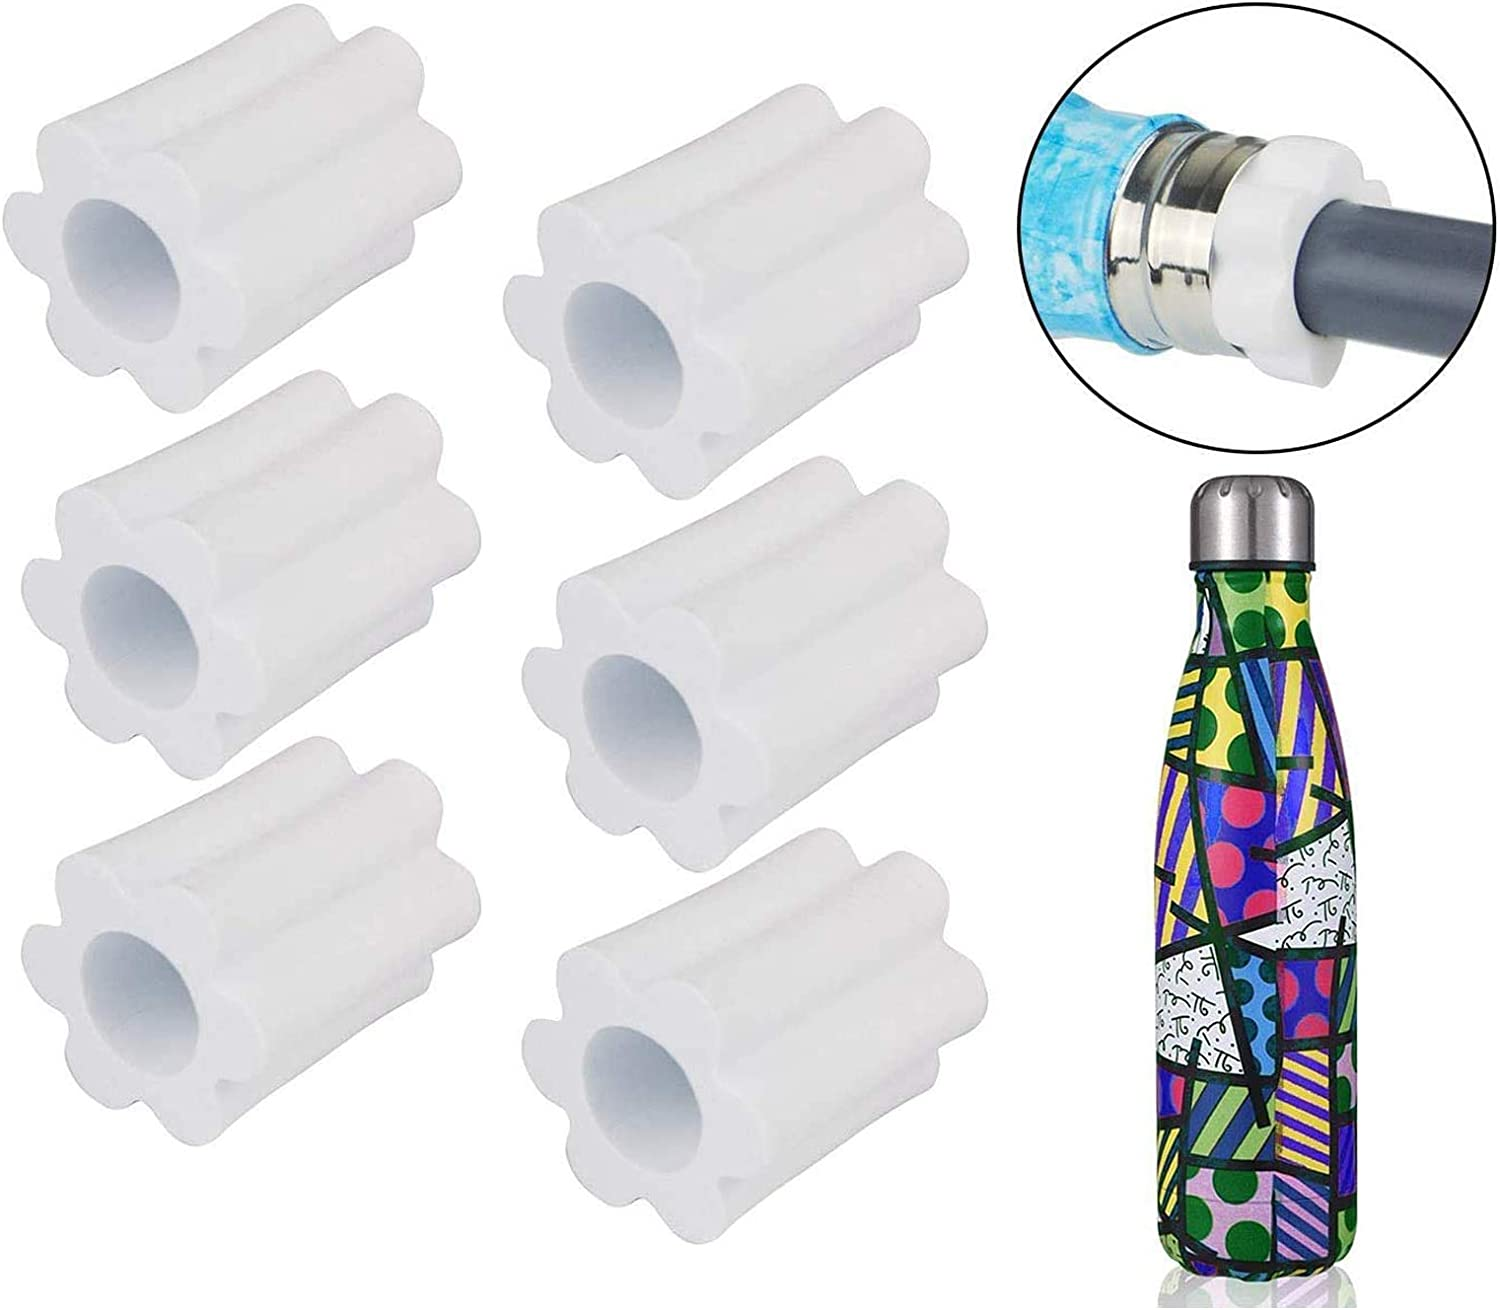 HLHGR Cup Turner Foam Set for/3//4 PVC Pipe /Cup Turner Inserts Accessories Tumbler Spinner Foams Fit 10 oz 20 oz 30 oz 40 oz and 12 17 25 oz Cola Shaped Water Bottles